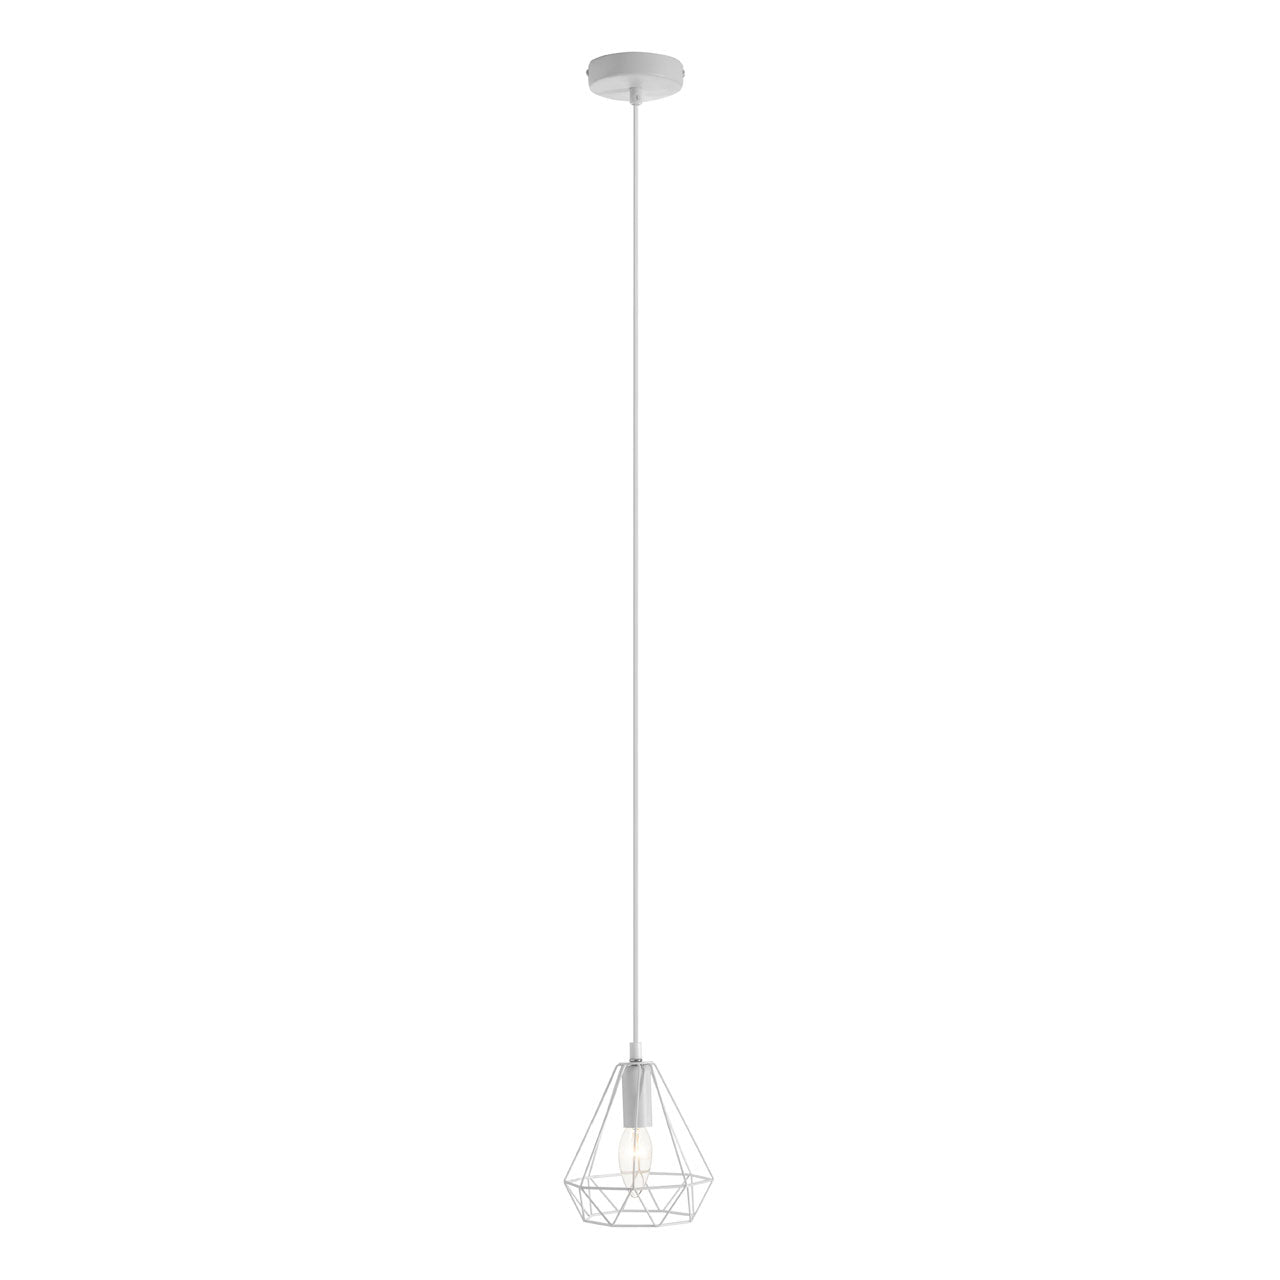 Beli Pendant Light White - Ezzo